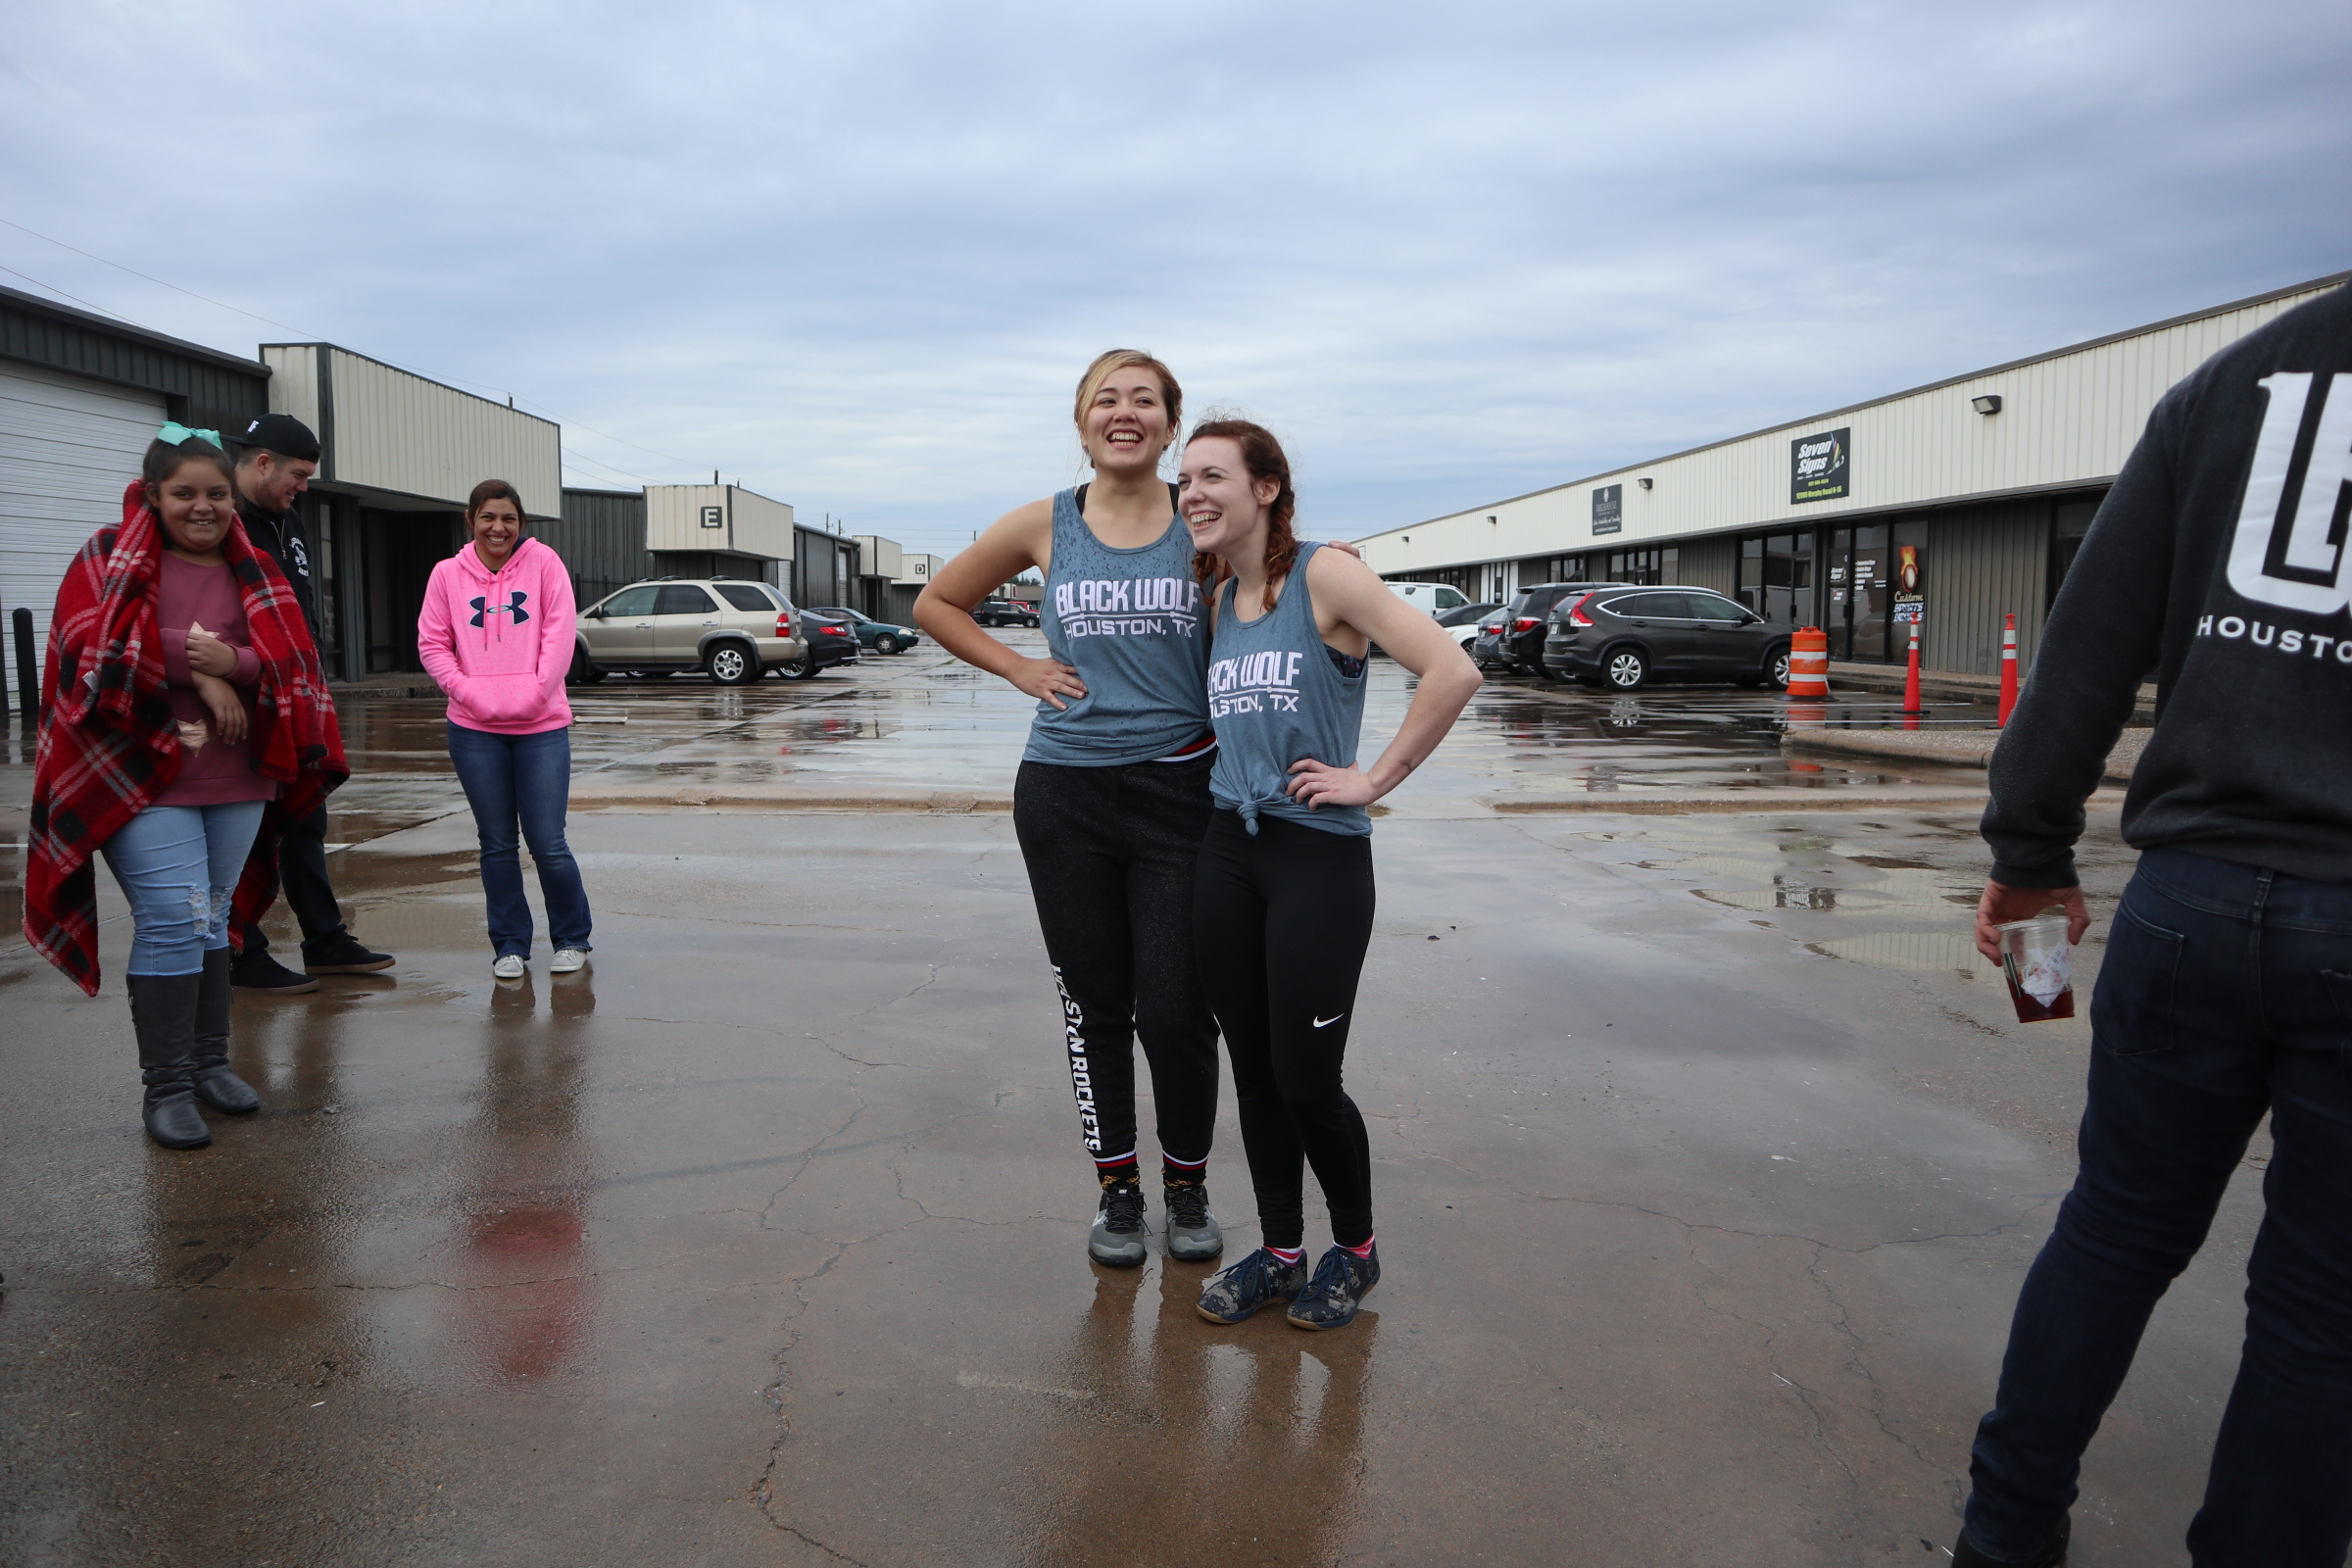 Dalila and Summer competed at Hammer & Chisel this weekend. It was Dalila's first competition and they did awesome!